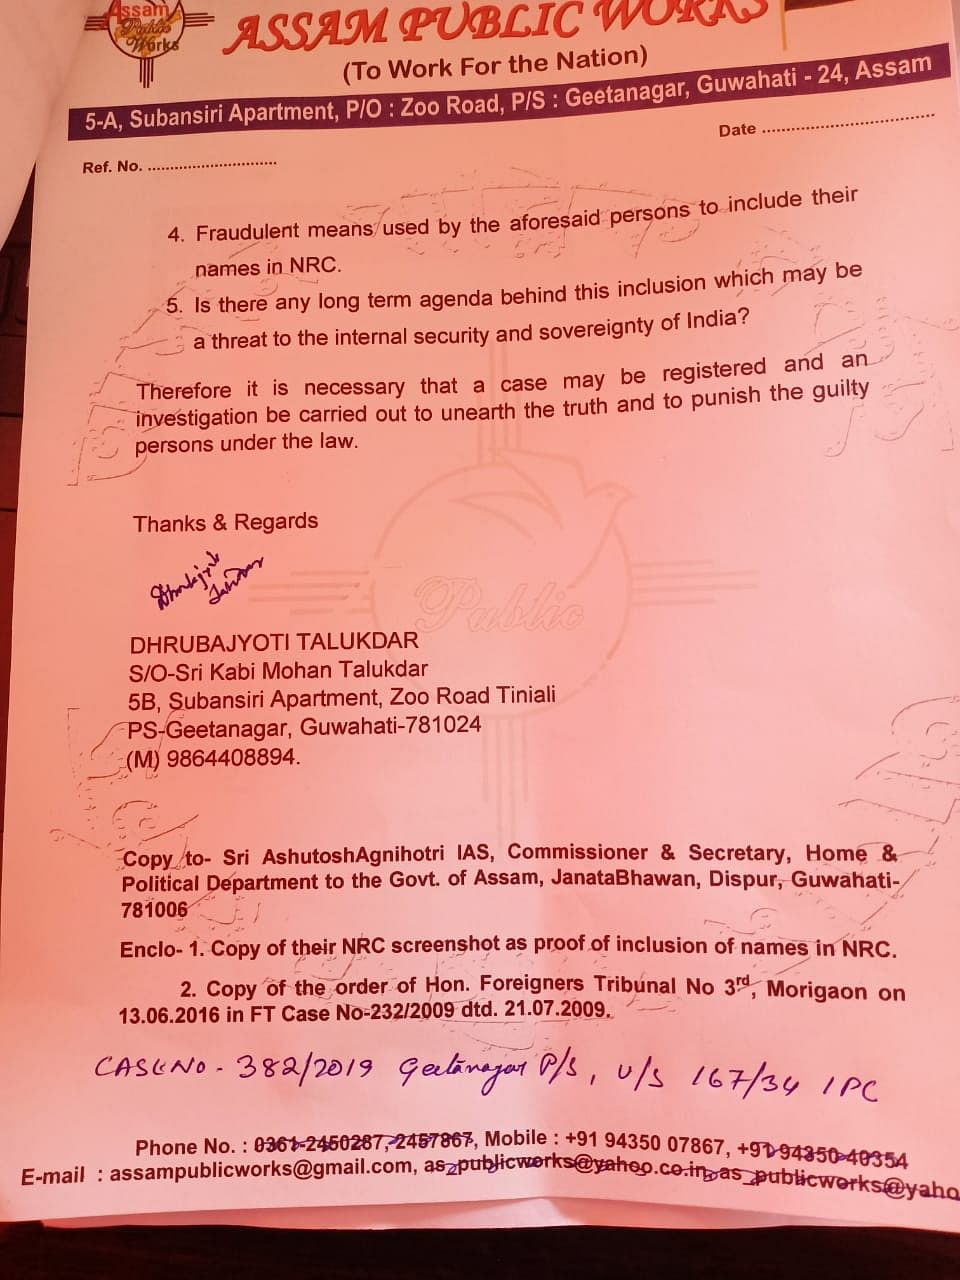 Copy of the FIR (page 2) lodged by Assam Public Works against the three 'foreigners' whose names figured in the final NRC published on August 31